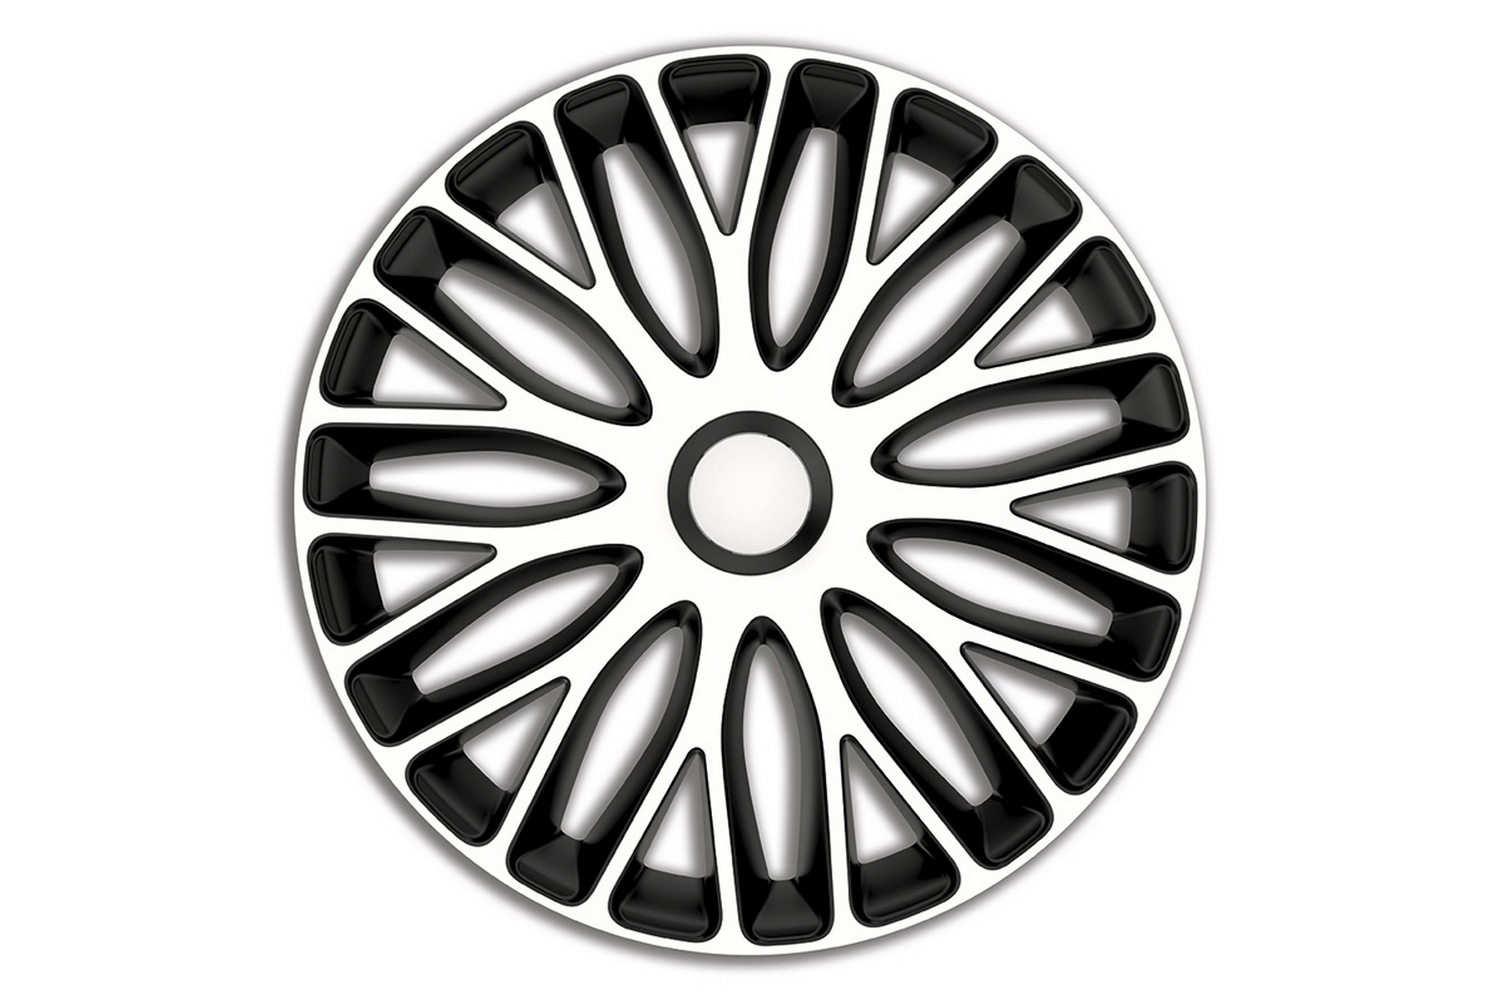 Wheel Cover Set Mugello 16 Inch 4 Pcs Car Parts Expert